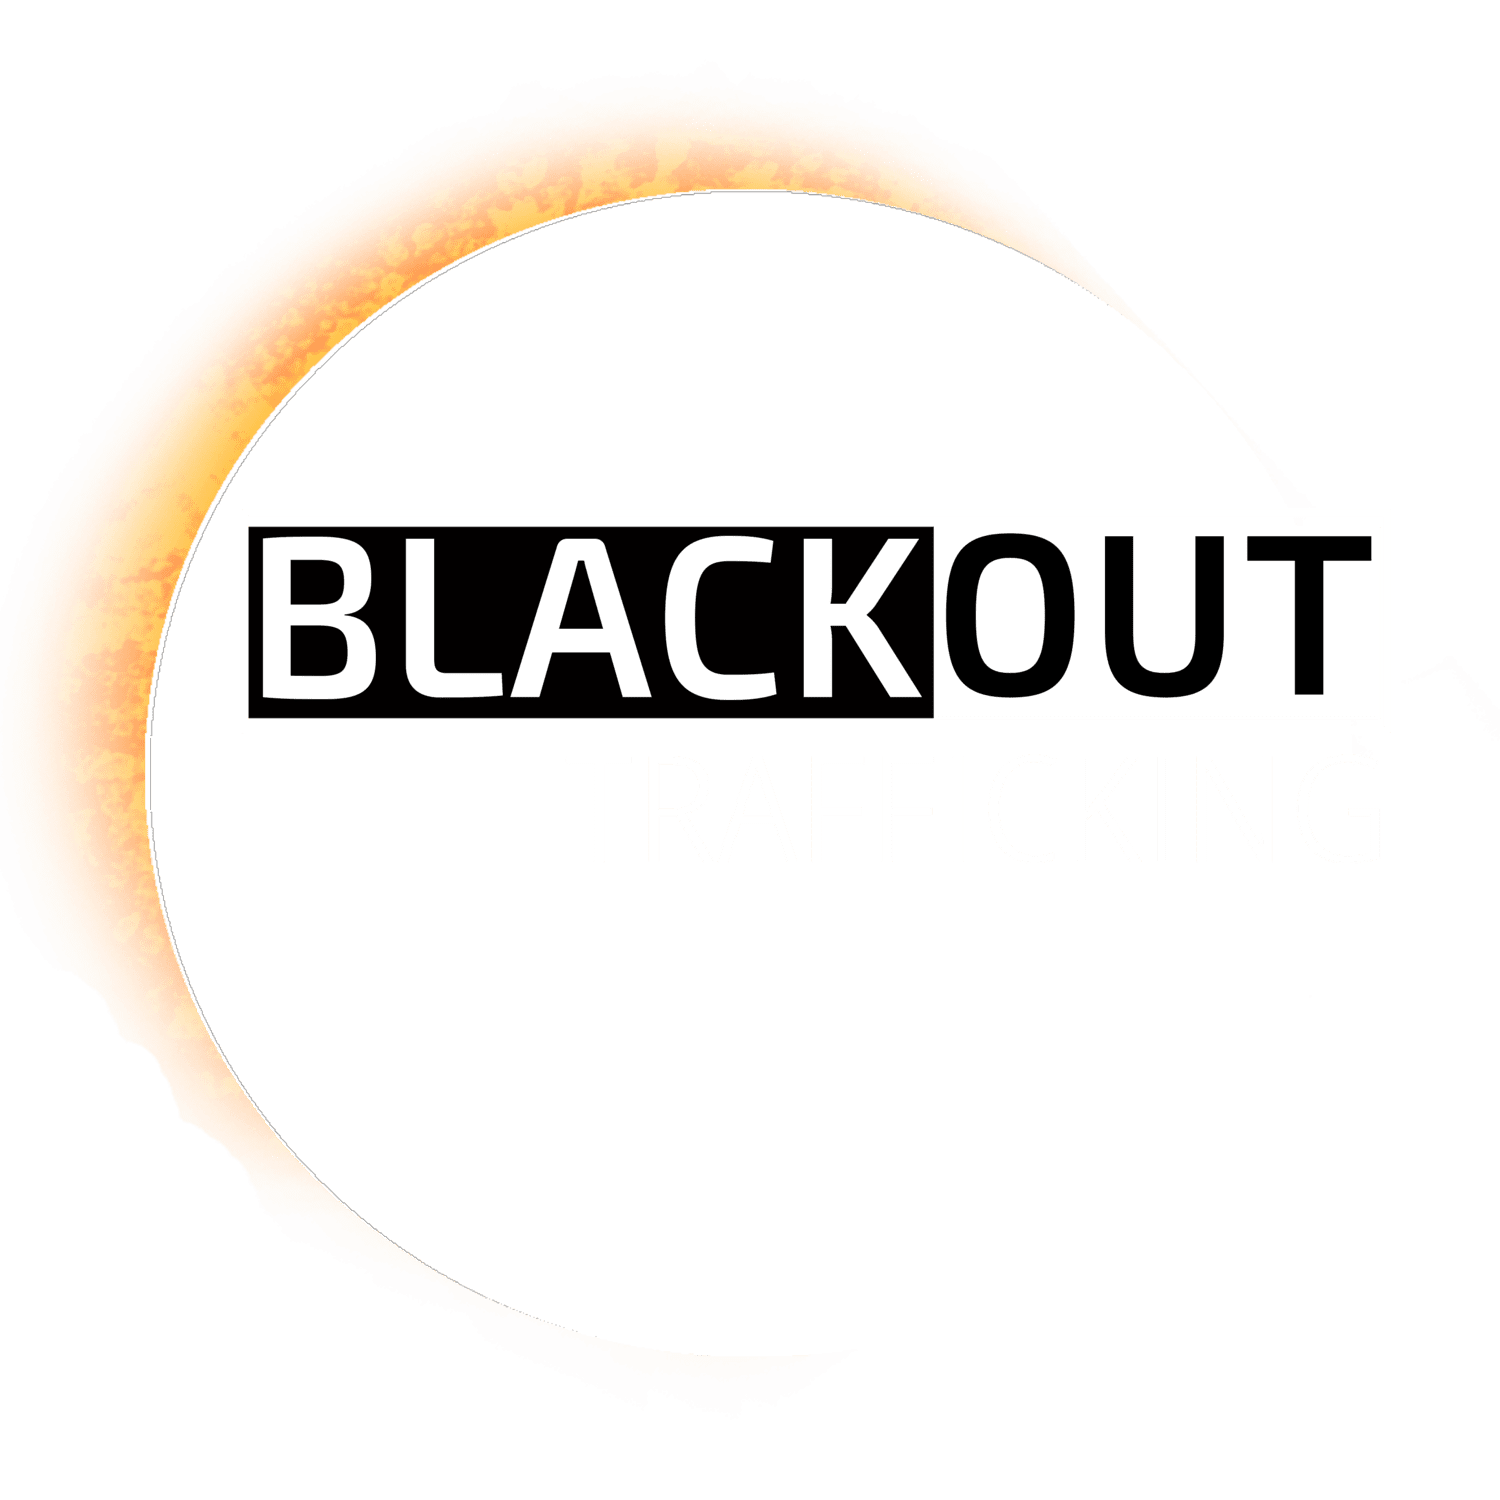 Blackout Trafficking Eclipse logo